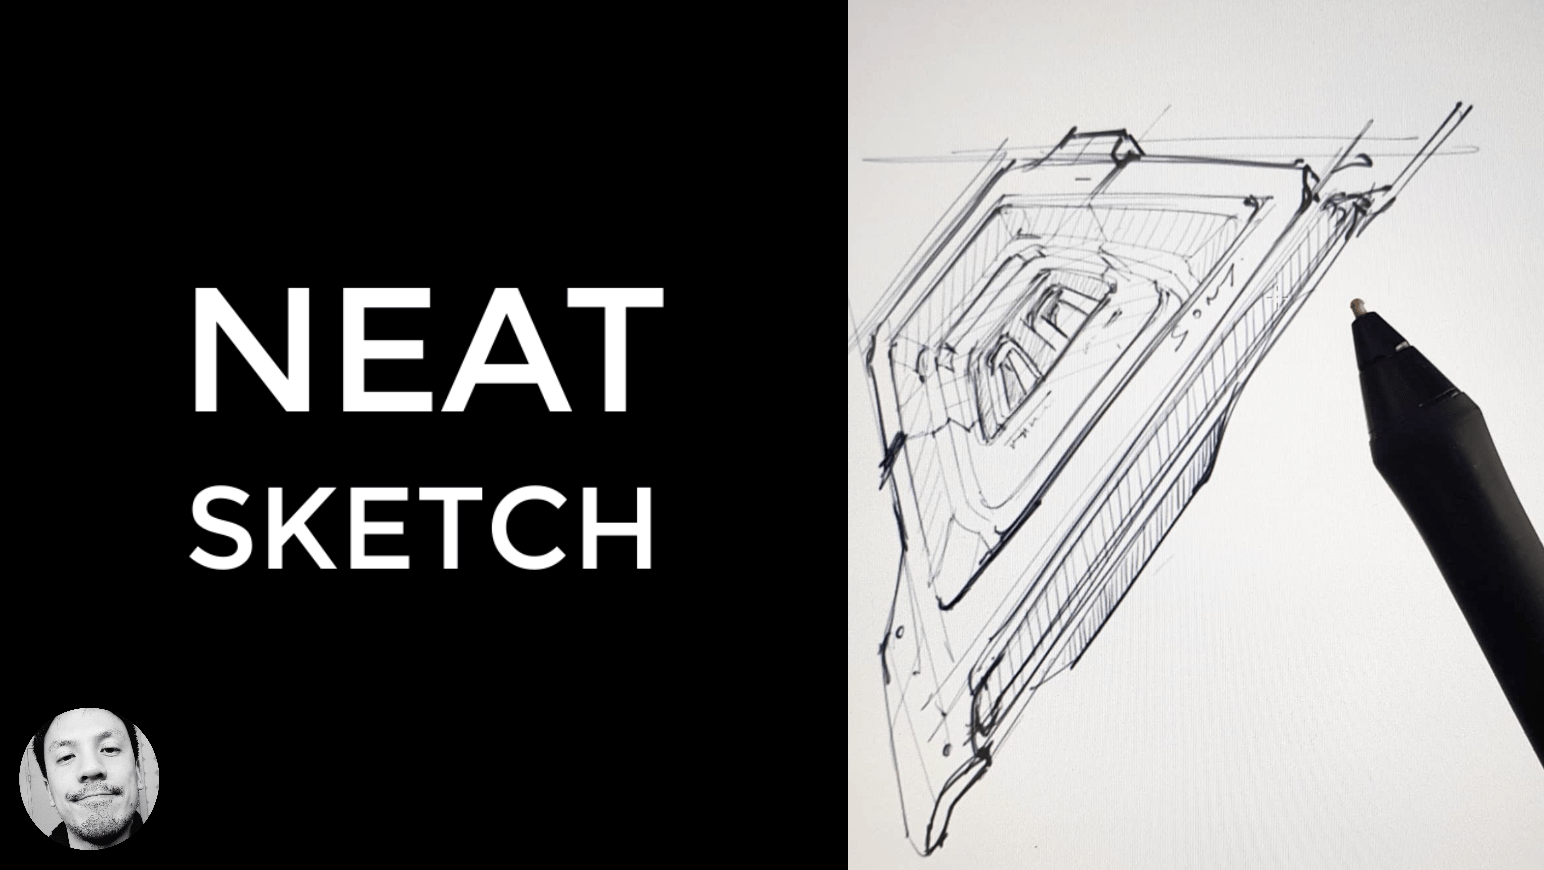 neat sketch the design sketchbook drawing hatching and rise your speed of sketching the design sketchbook chou tac chung a